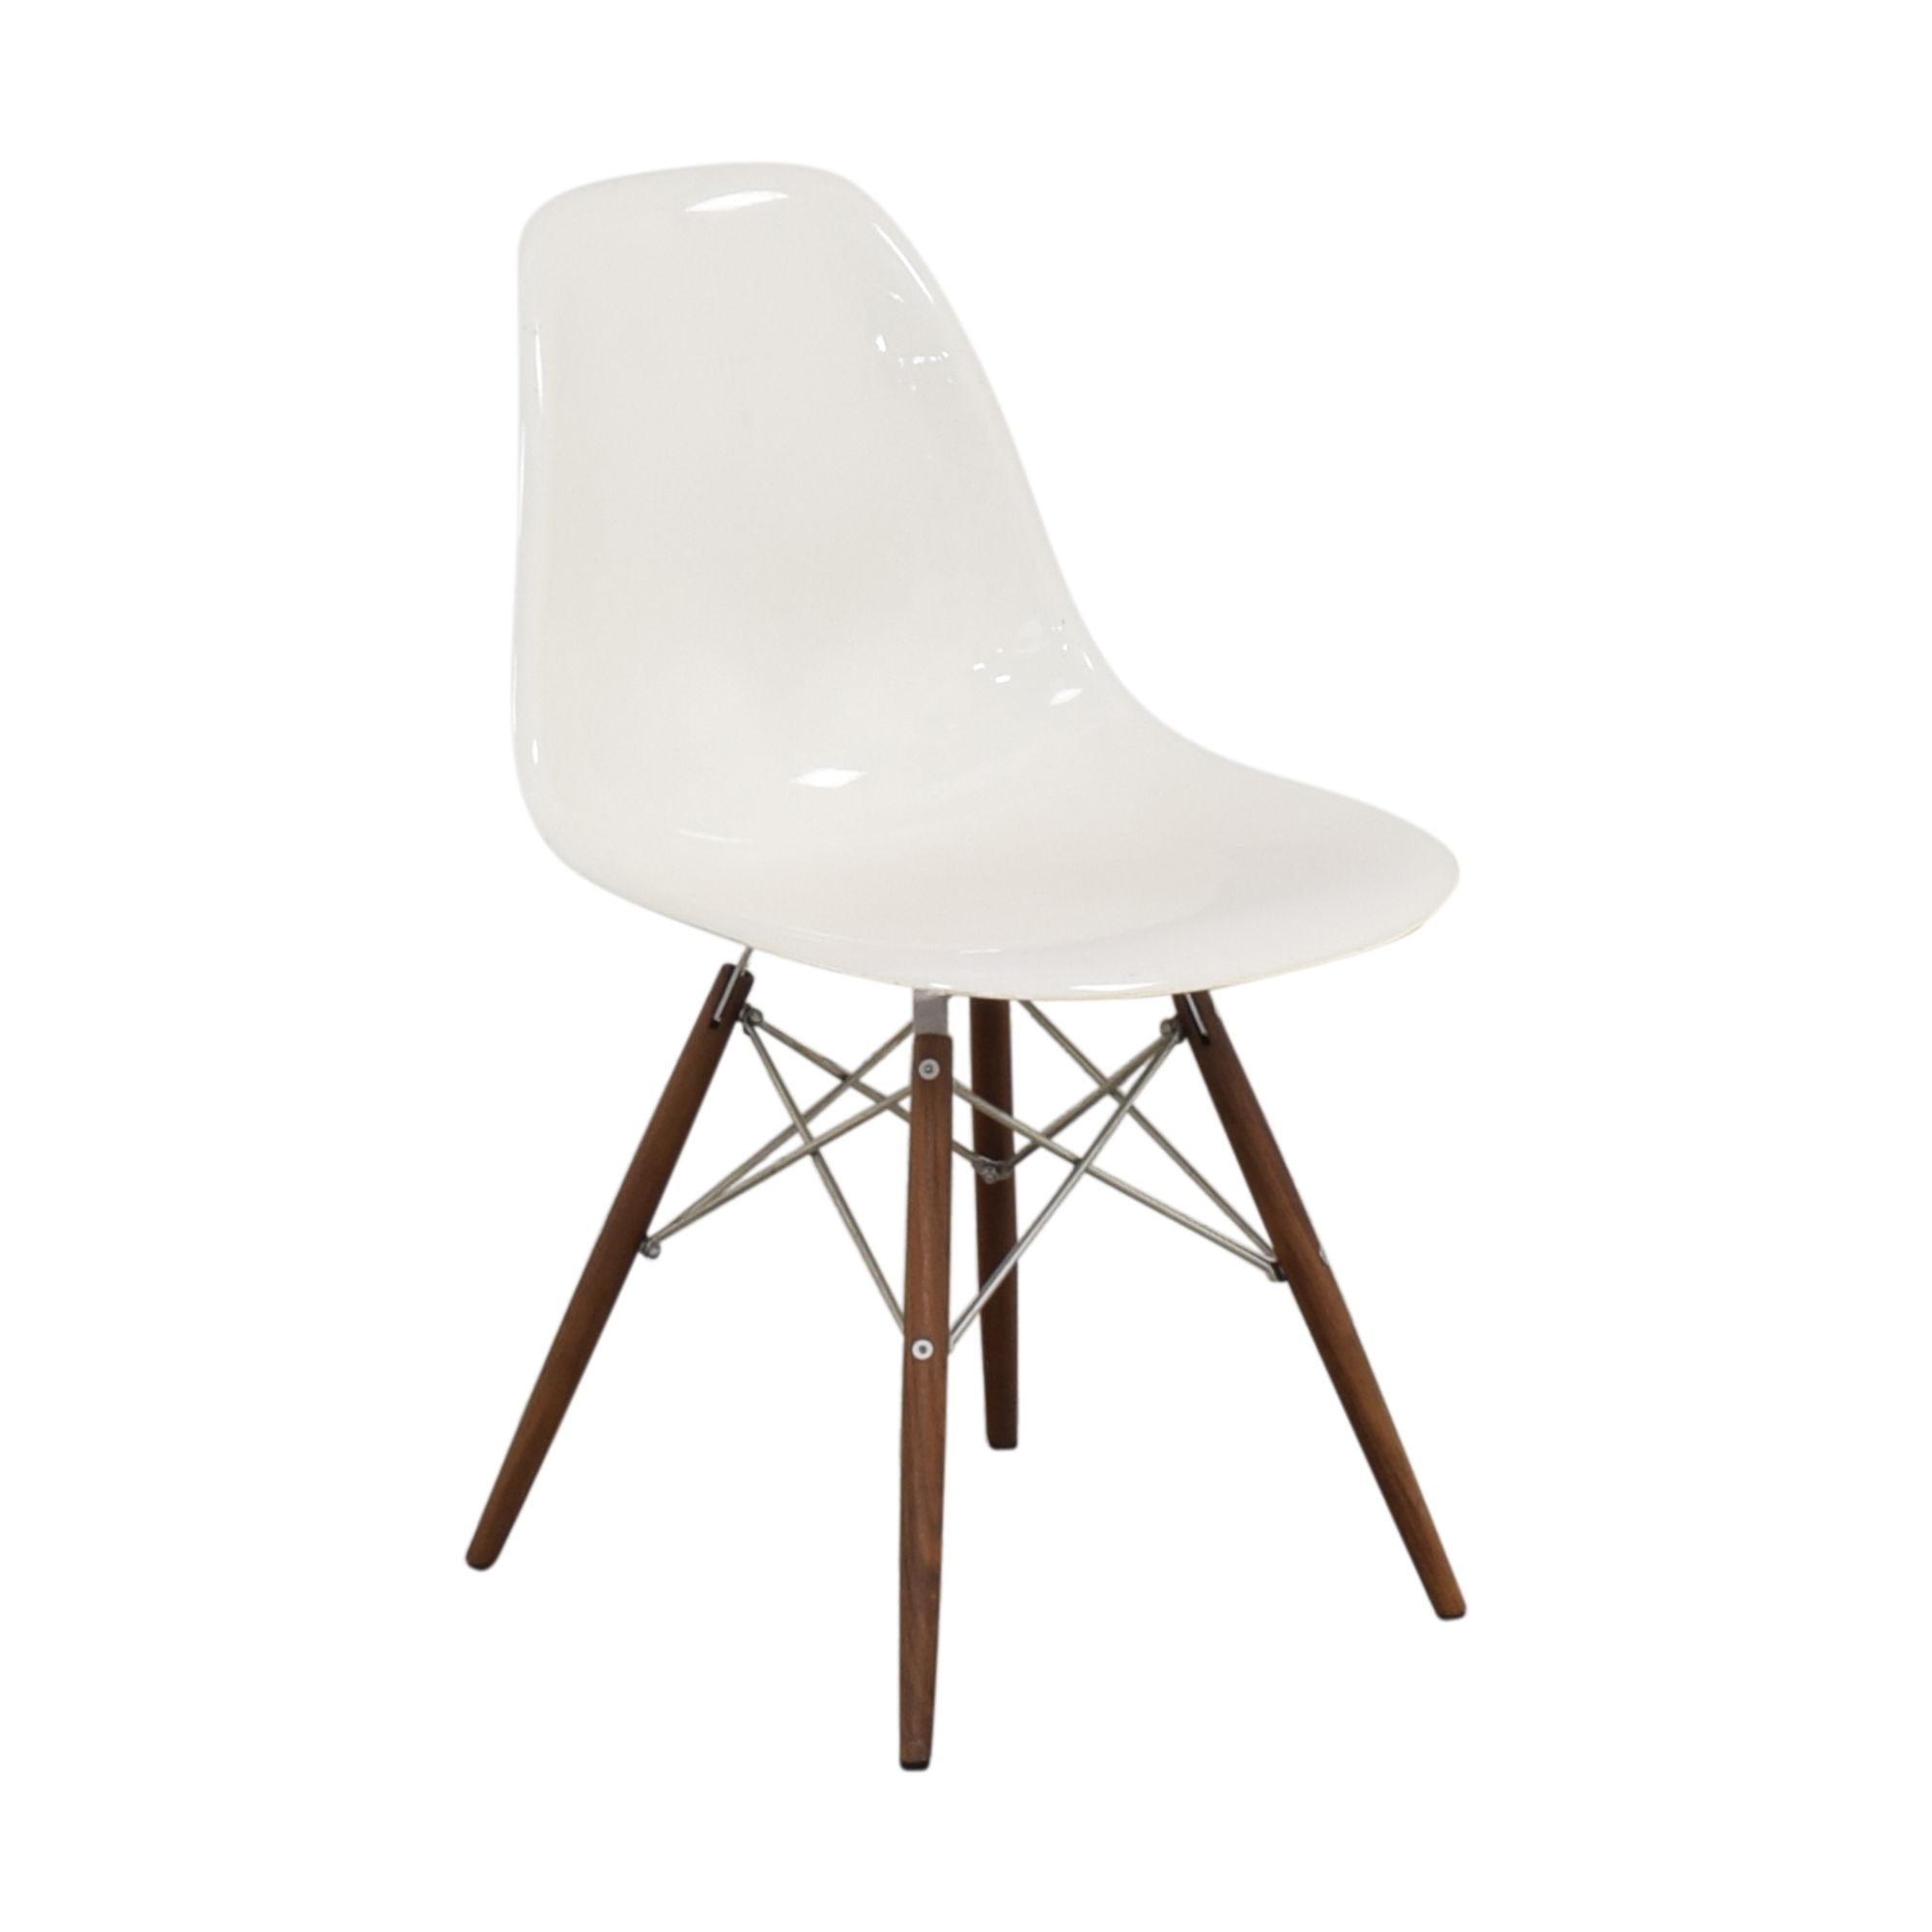 Eames-Style Molded Chair / Dining Chairs